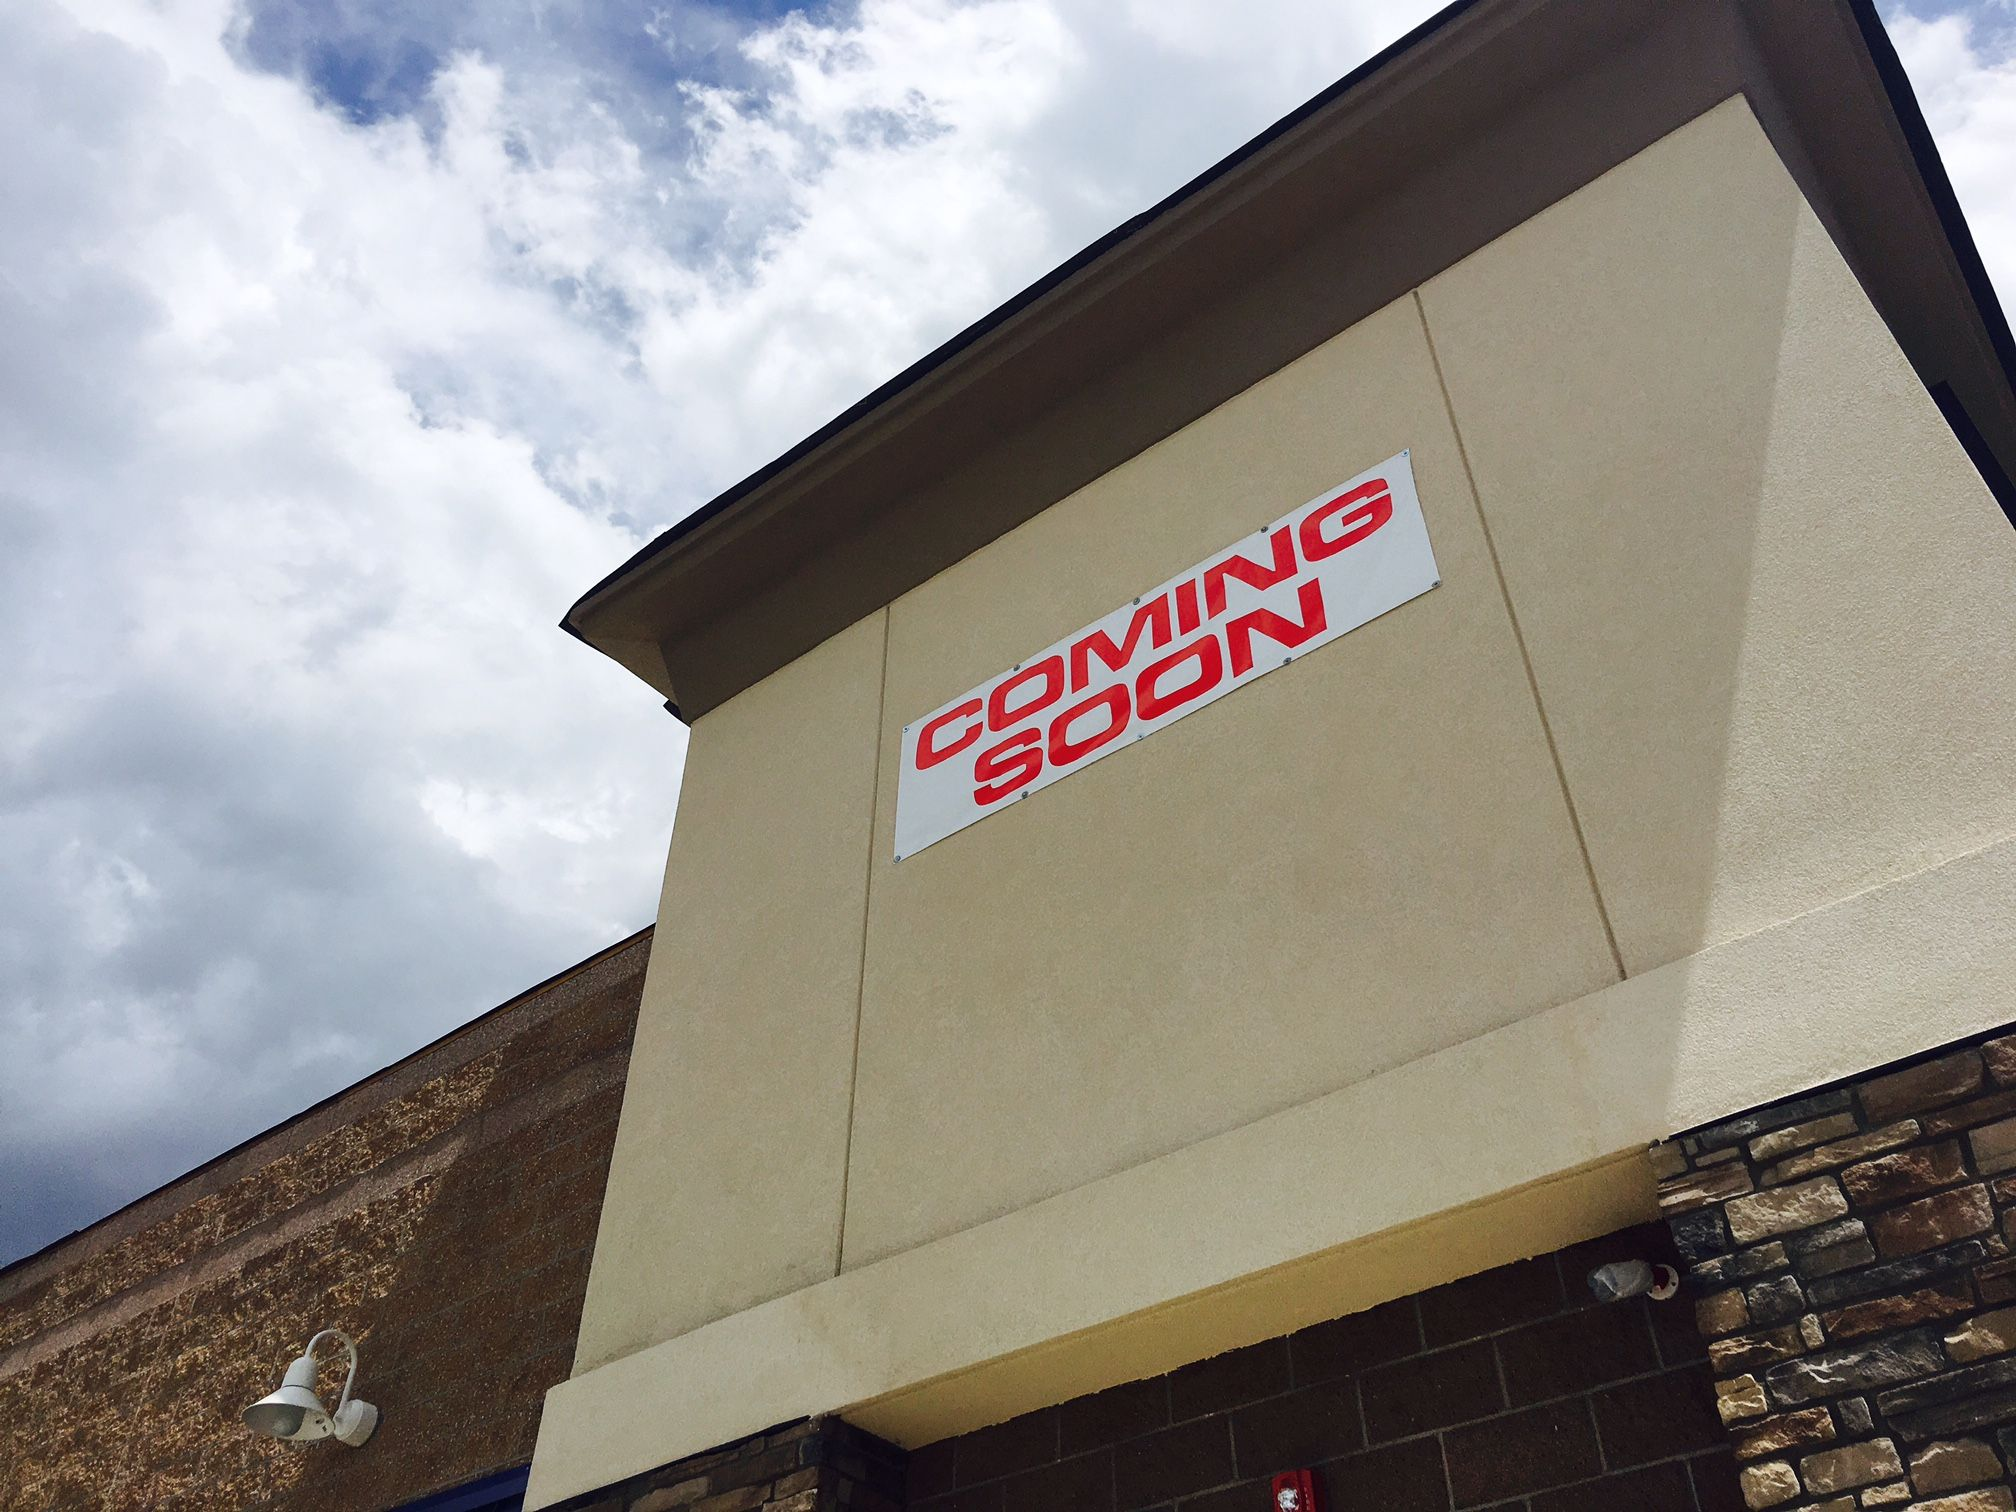 Goodwill invites public to celebrate opening of Castle Rock store